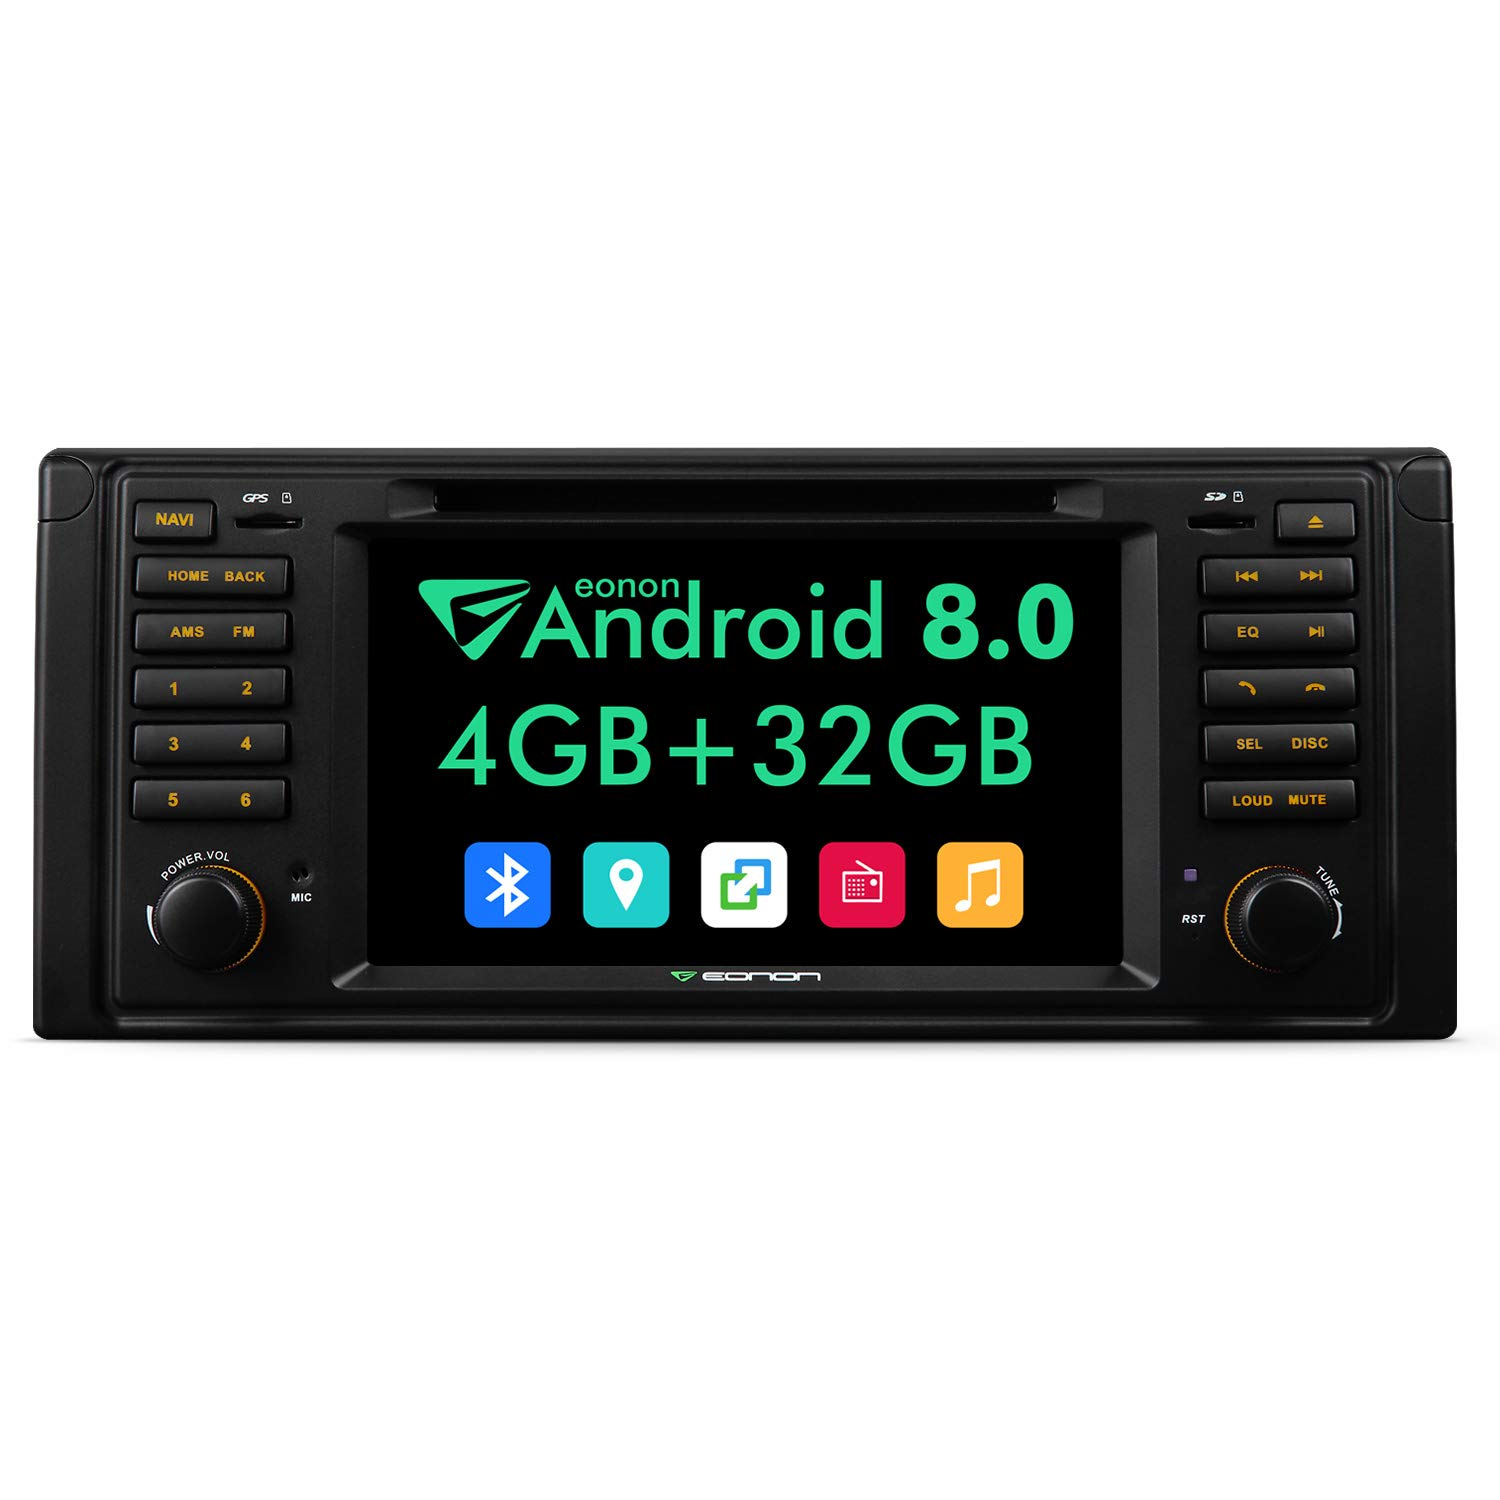 Android Auto Car Stereo Head Unit,Eonon 7 Inch Double Din Car Stereo Octa-Core,4GB RAM 32GB ROM Applicable to 5 Series 1995,1996, 1997,1998,1999,2000,2001 and 2002 (E39) Support Fastboot-GA9201A